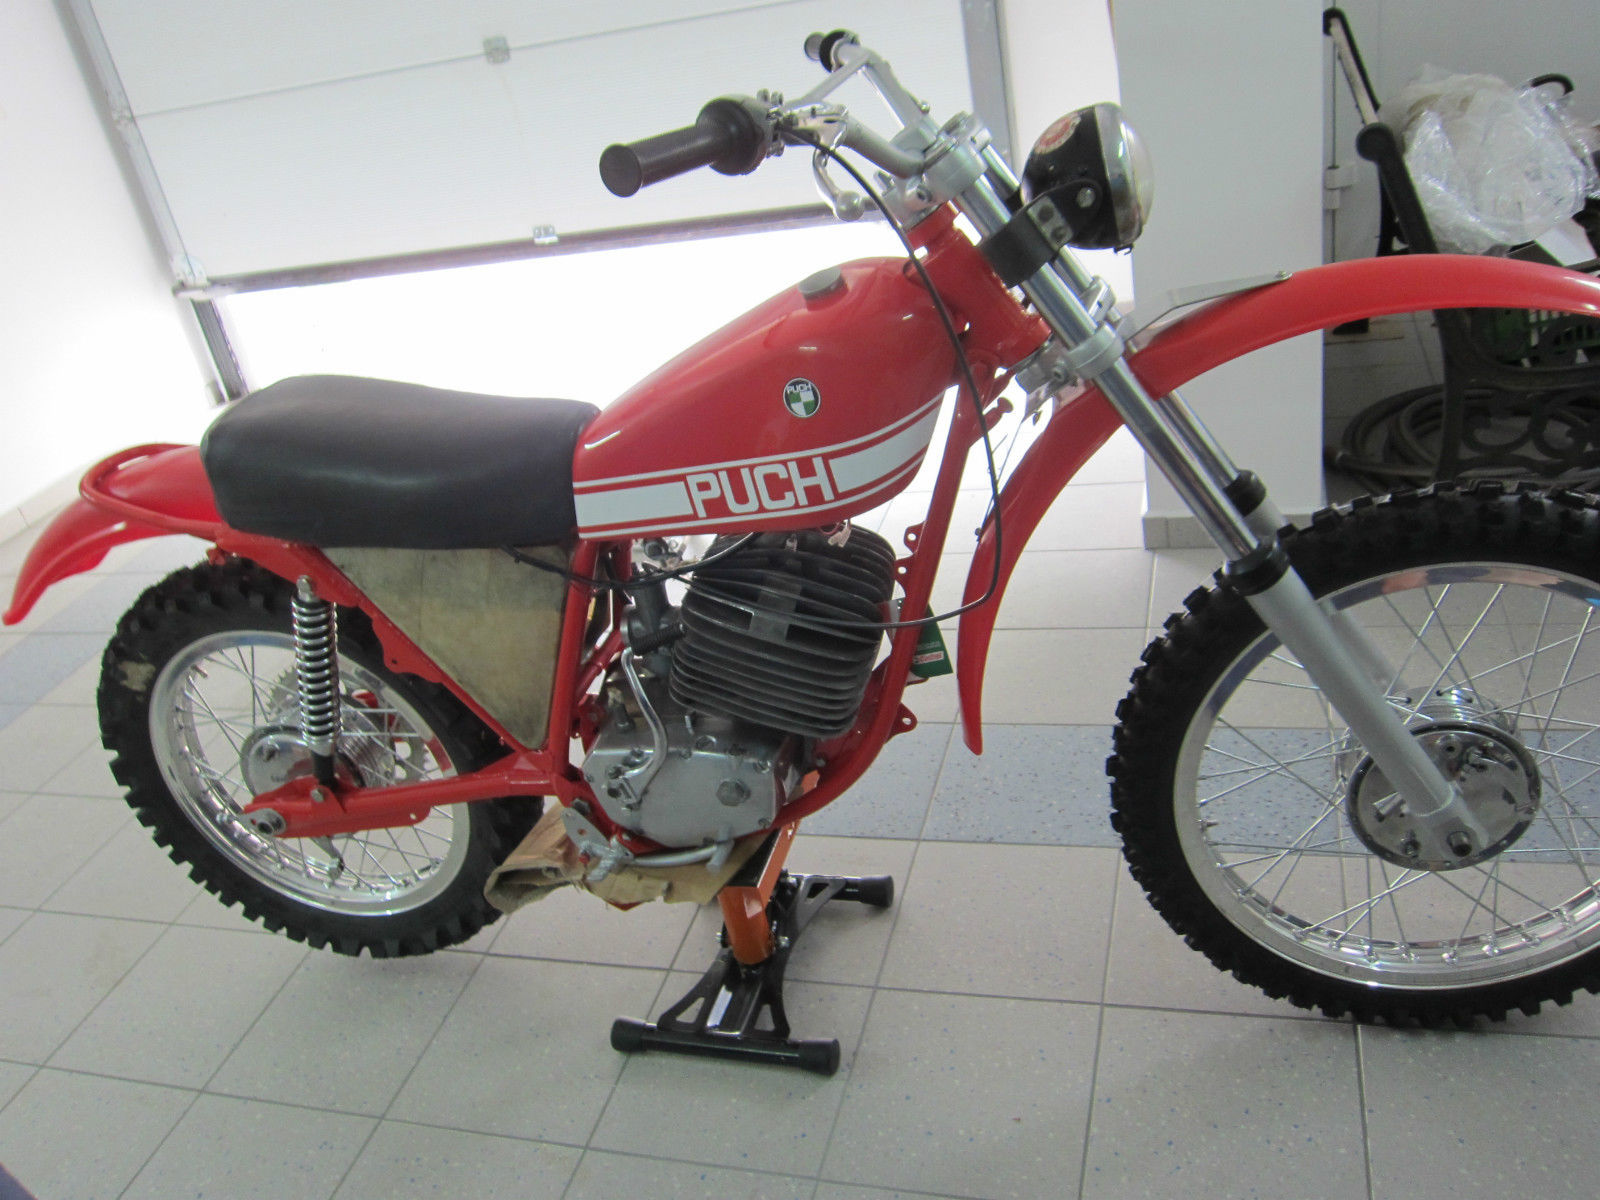 Puch 175 Enduro images #169643